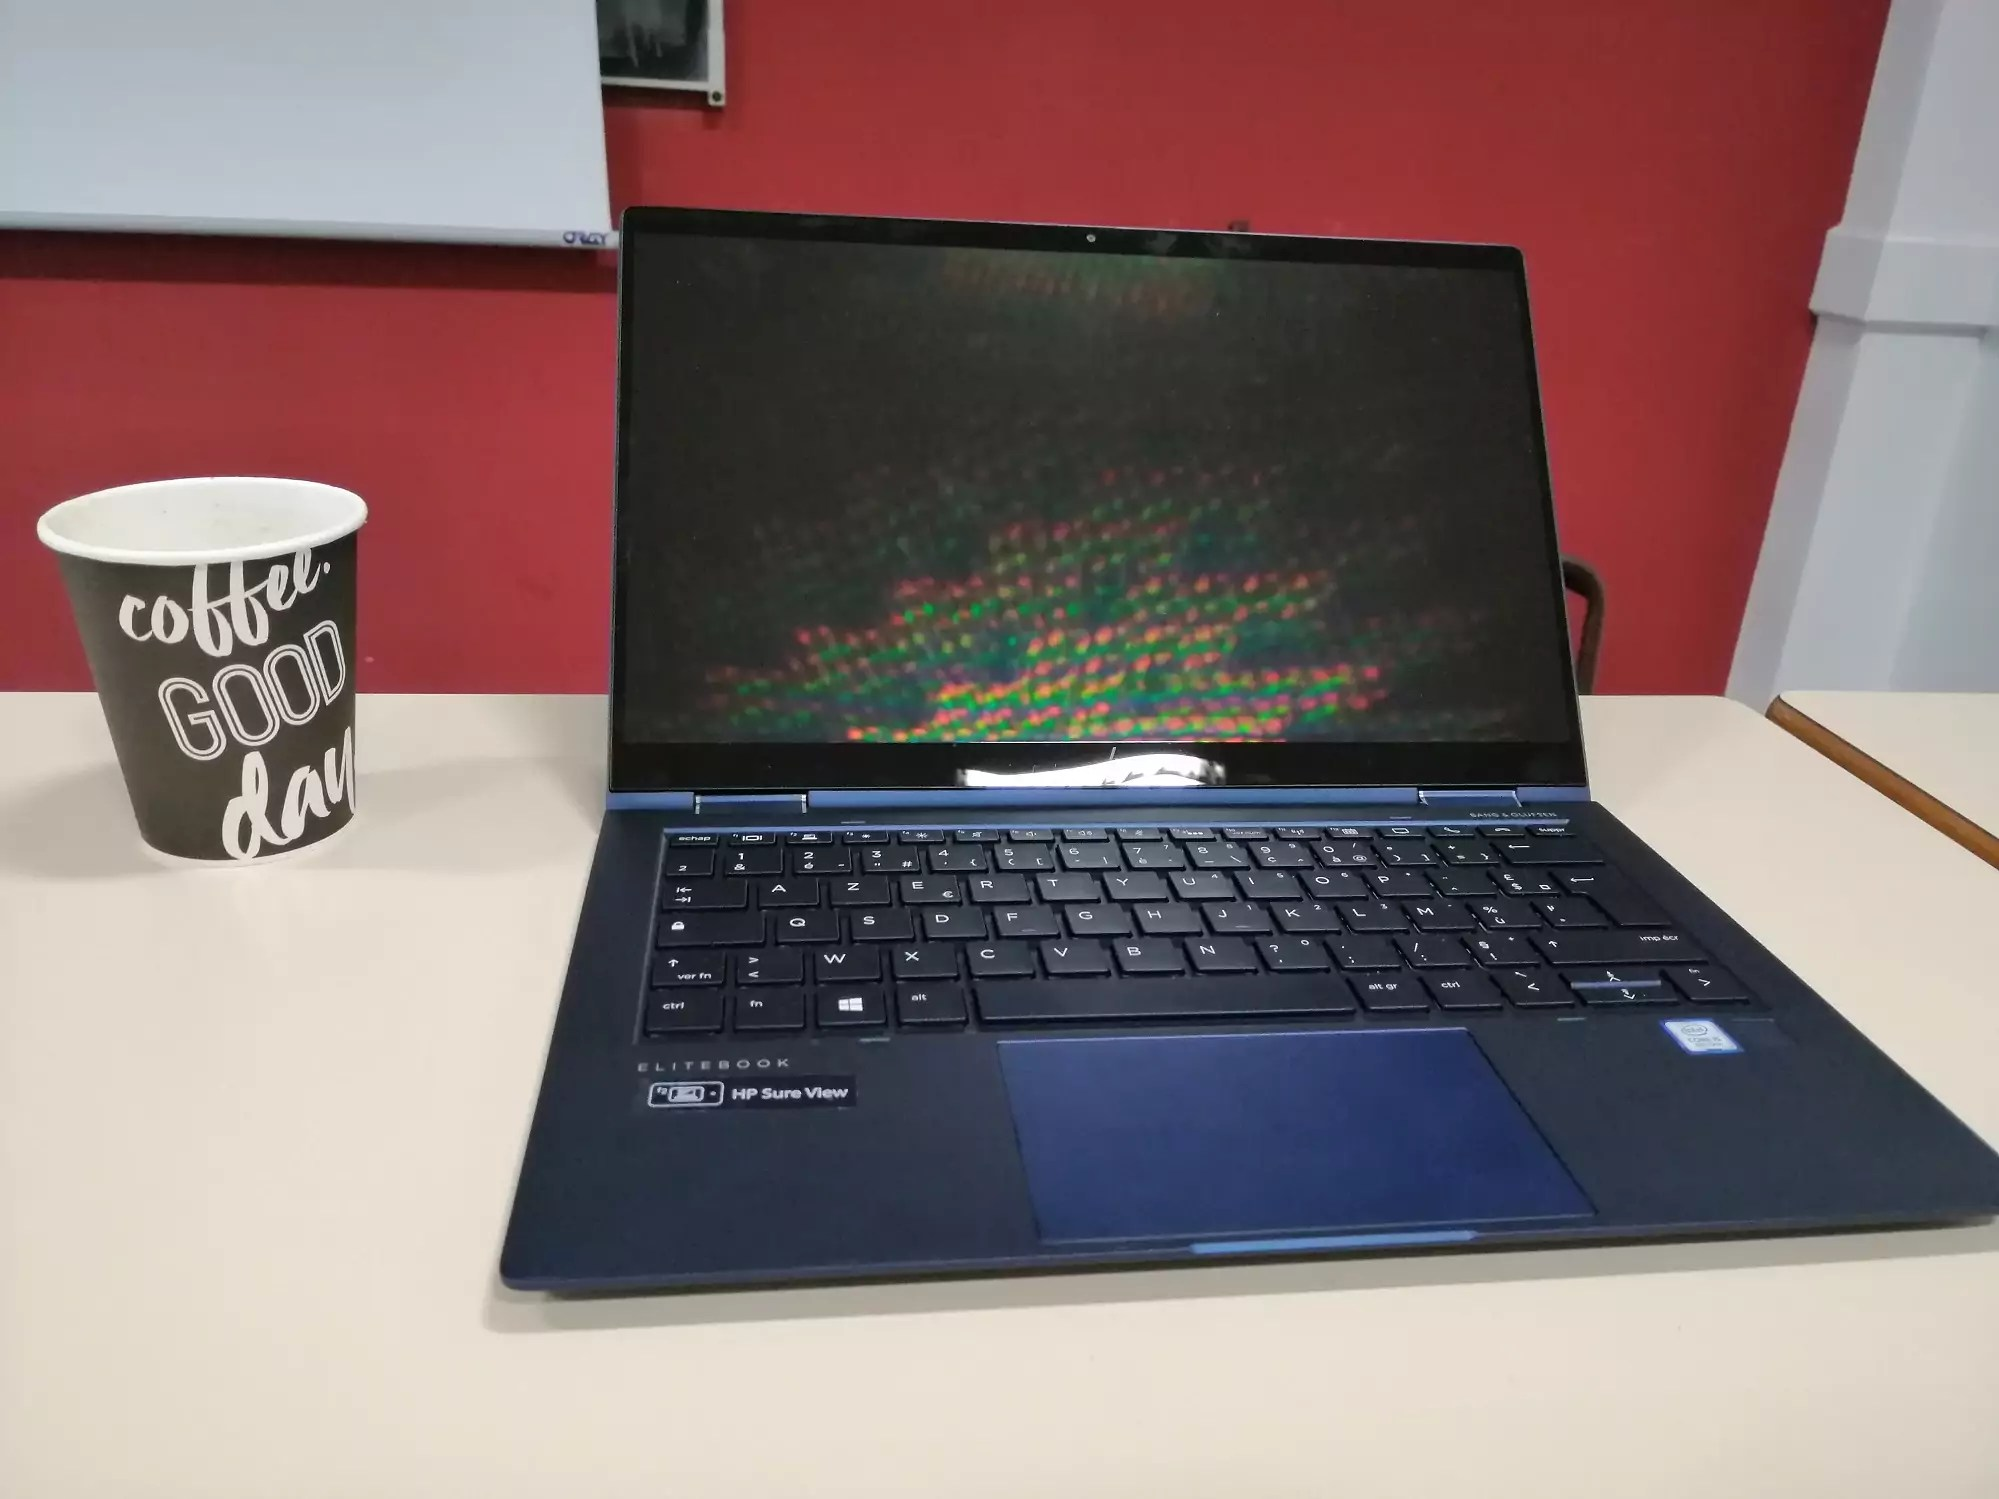 HP elite dragonfly - pause cafe